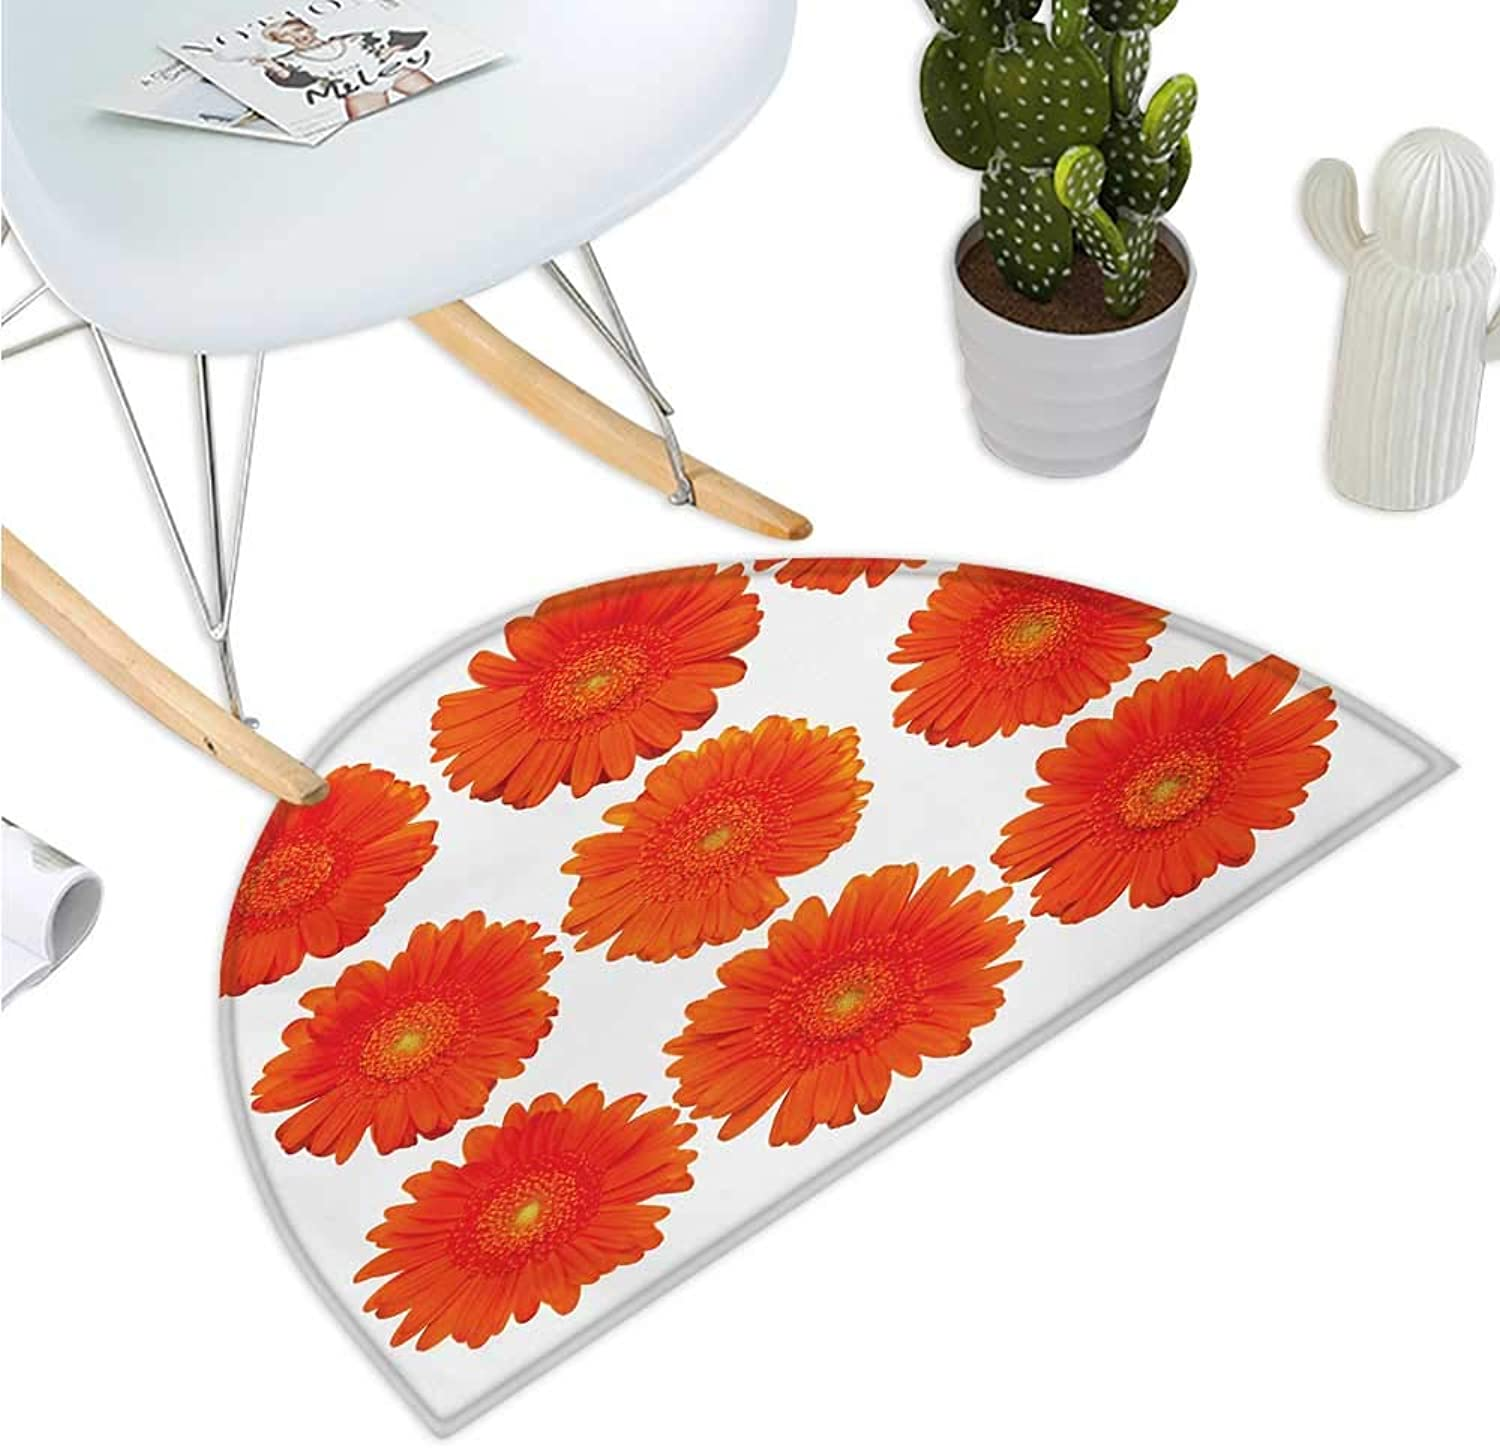 orange Half Round Door mats Collection of orange Gerberas Botanical Bouquet Seasonal Growth Garden Spring Theme Entry Door Mat H 39.3  xD 59  orange